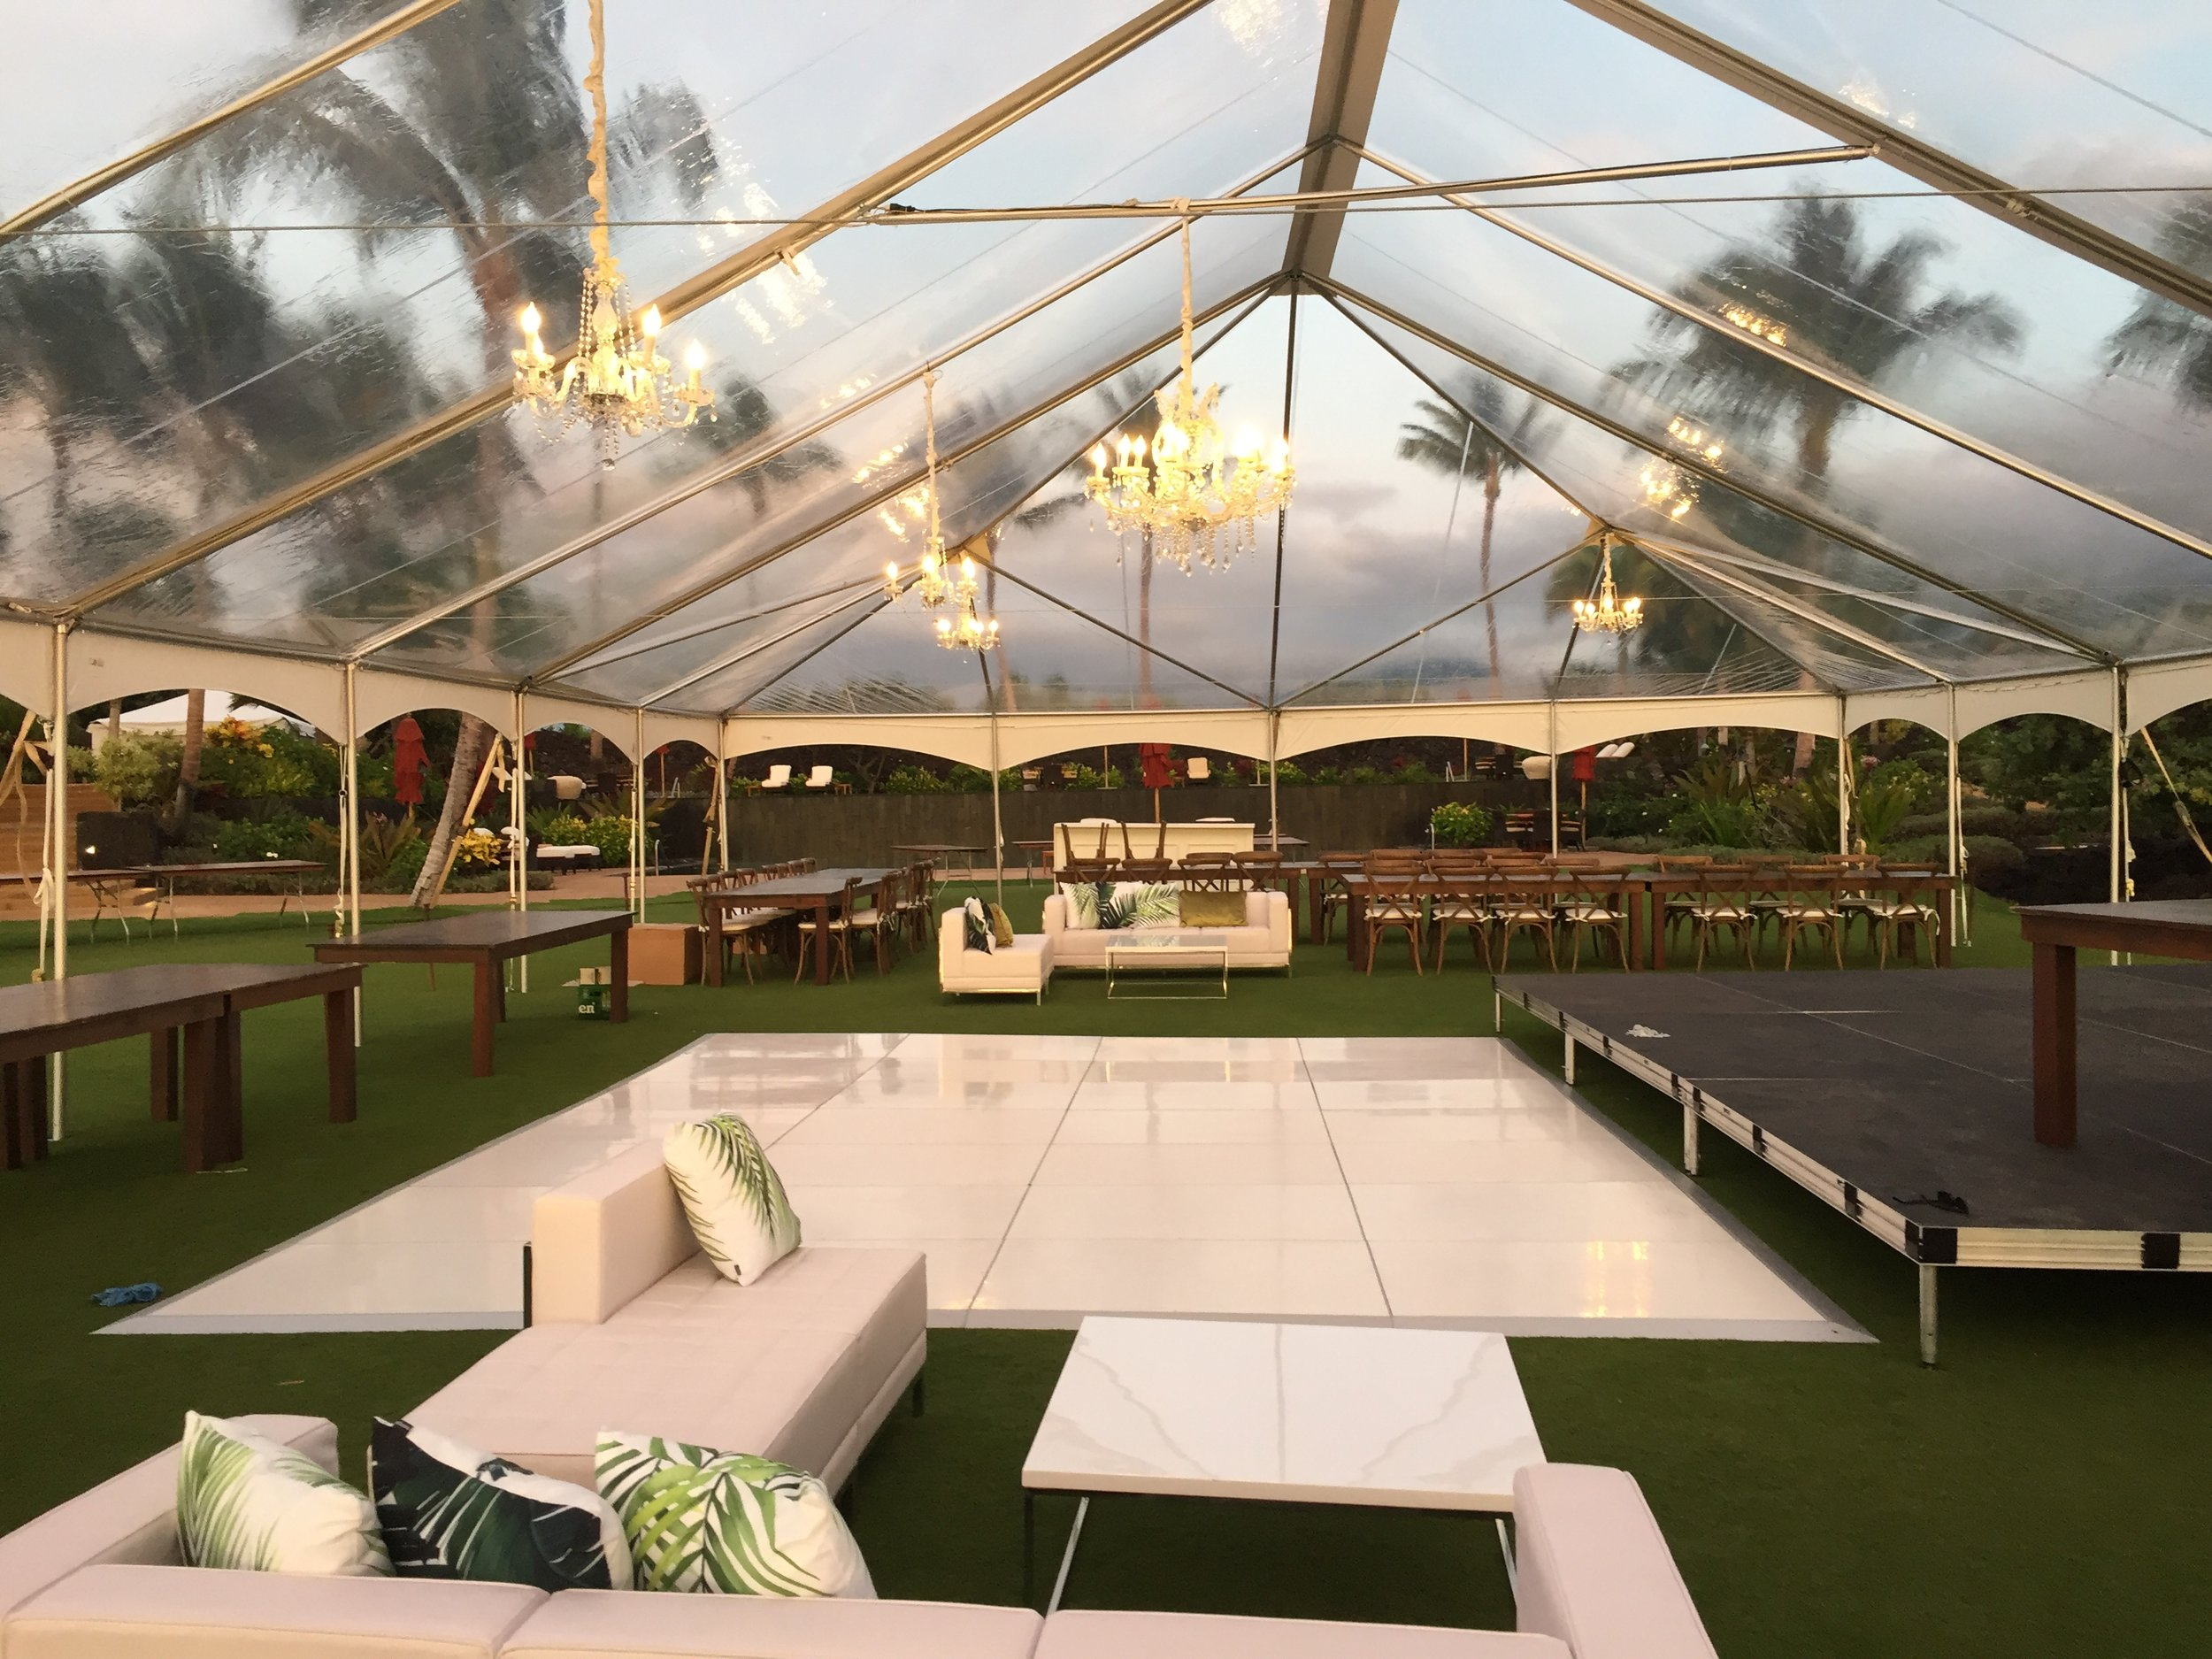 40x80 clear tent with white trim for wedding at Kukio North development. Featured in People Magazine. With Dark wood farm tables, crossback vineyard chairs, high gloss white dance floor, staging, chandeliers, and white leather lounge furniture.